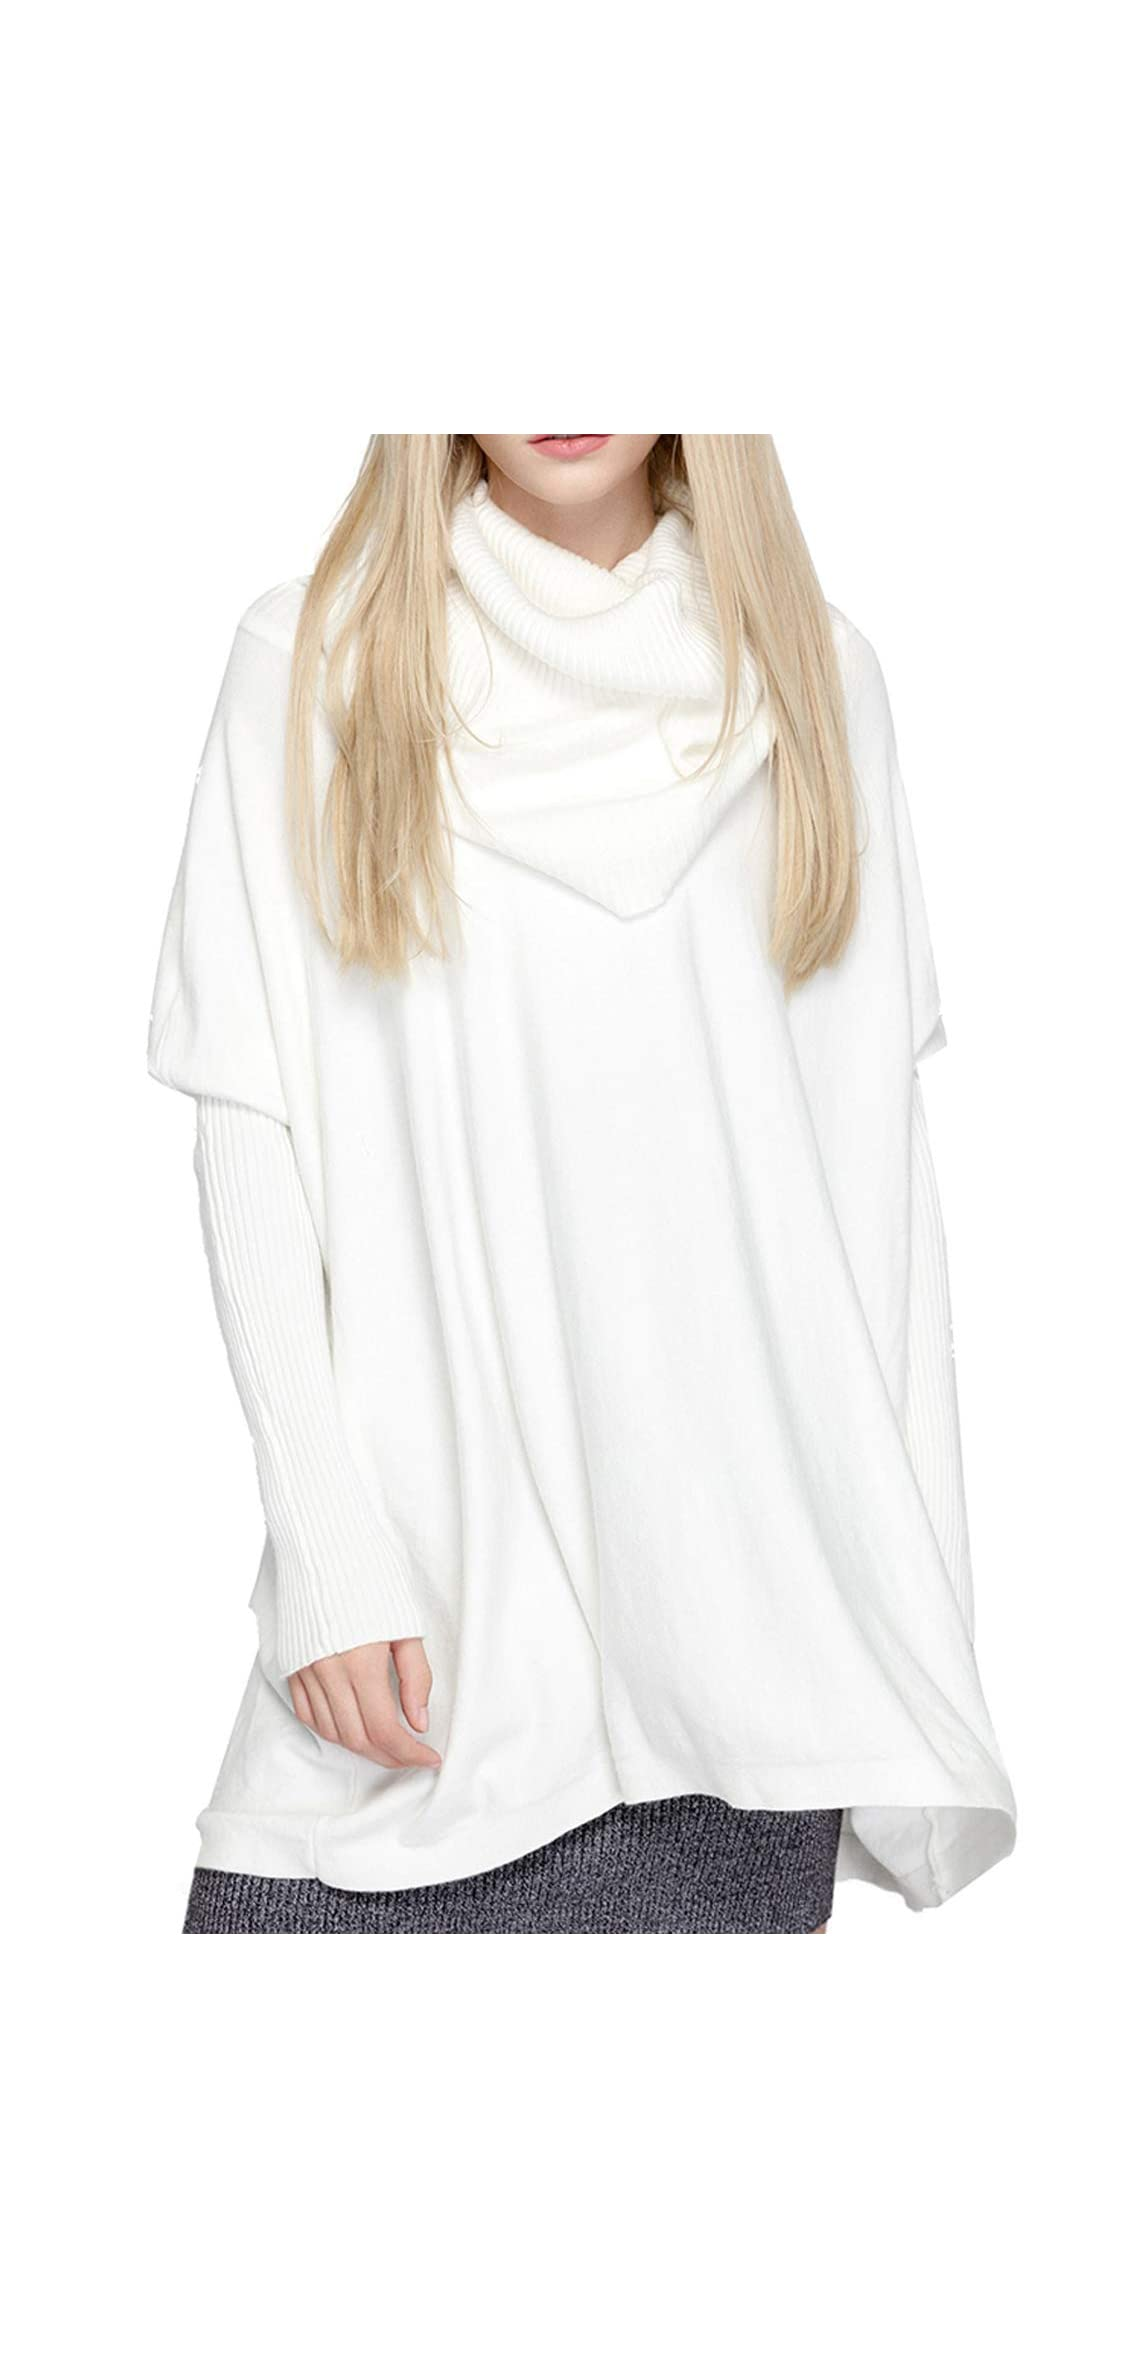 Women Oversized Cowl Neck Sweaters Long Sleeve Loose Fit